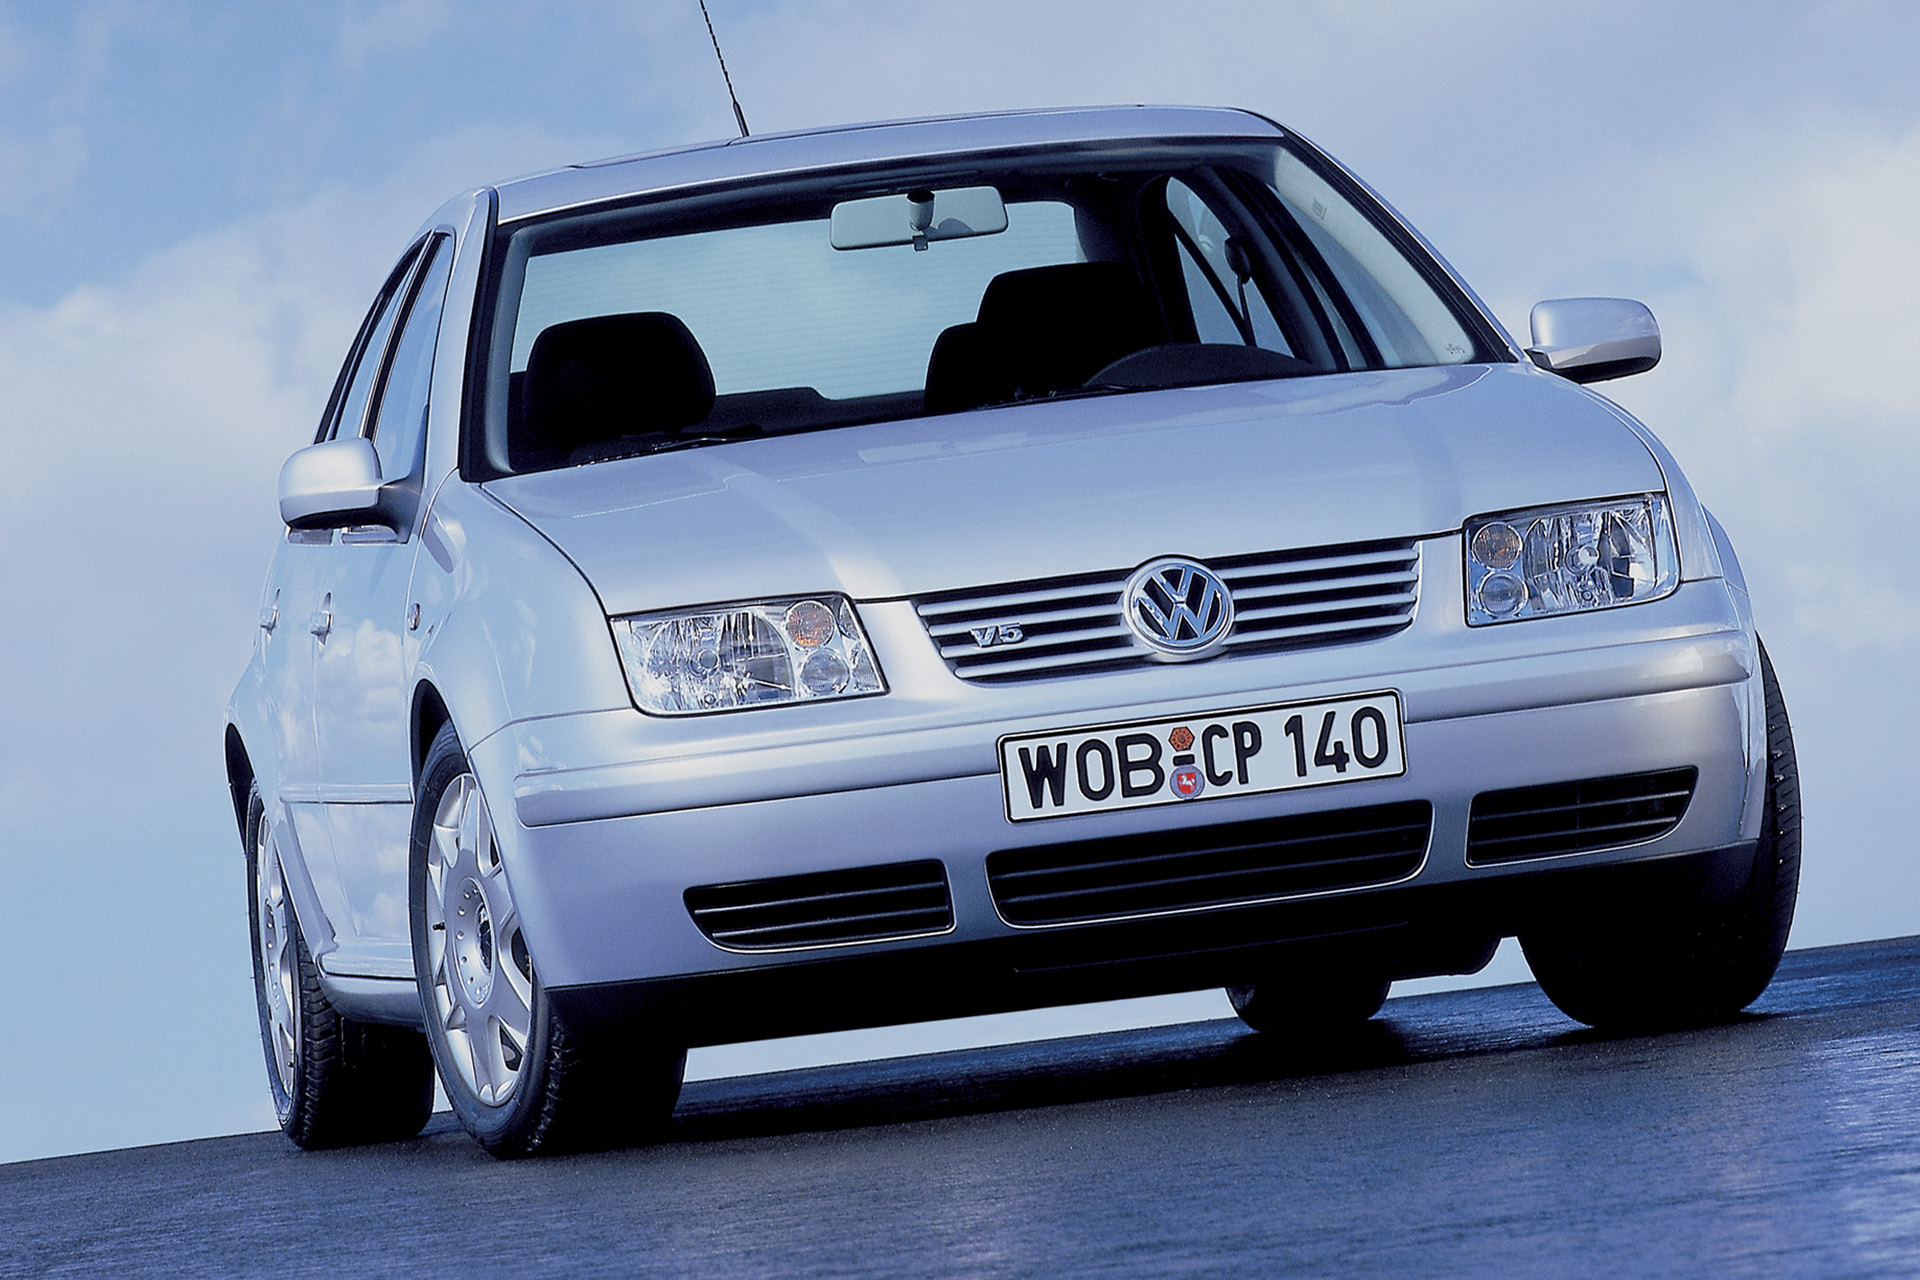 16 Cars That Use The Vag 18 20v Turbo Engine Haynes Publishing Mk4 Vw Jetta Timing Belt Volkswagen Bora